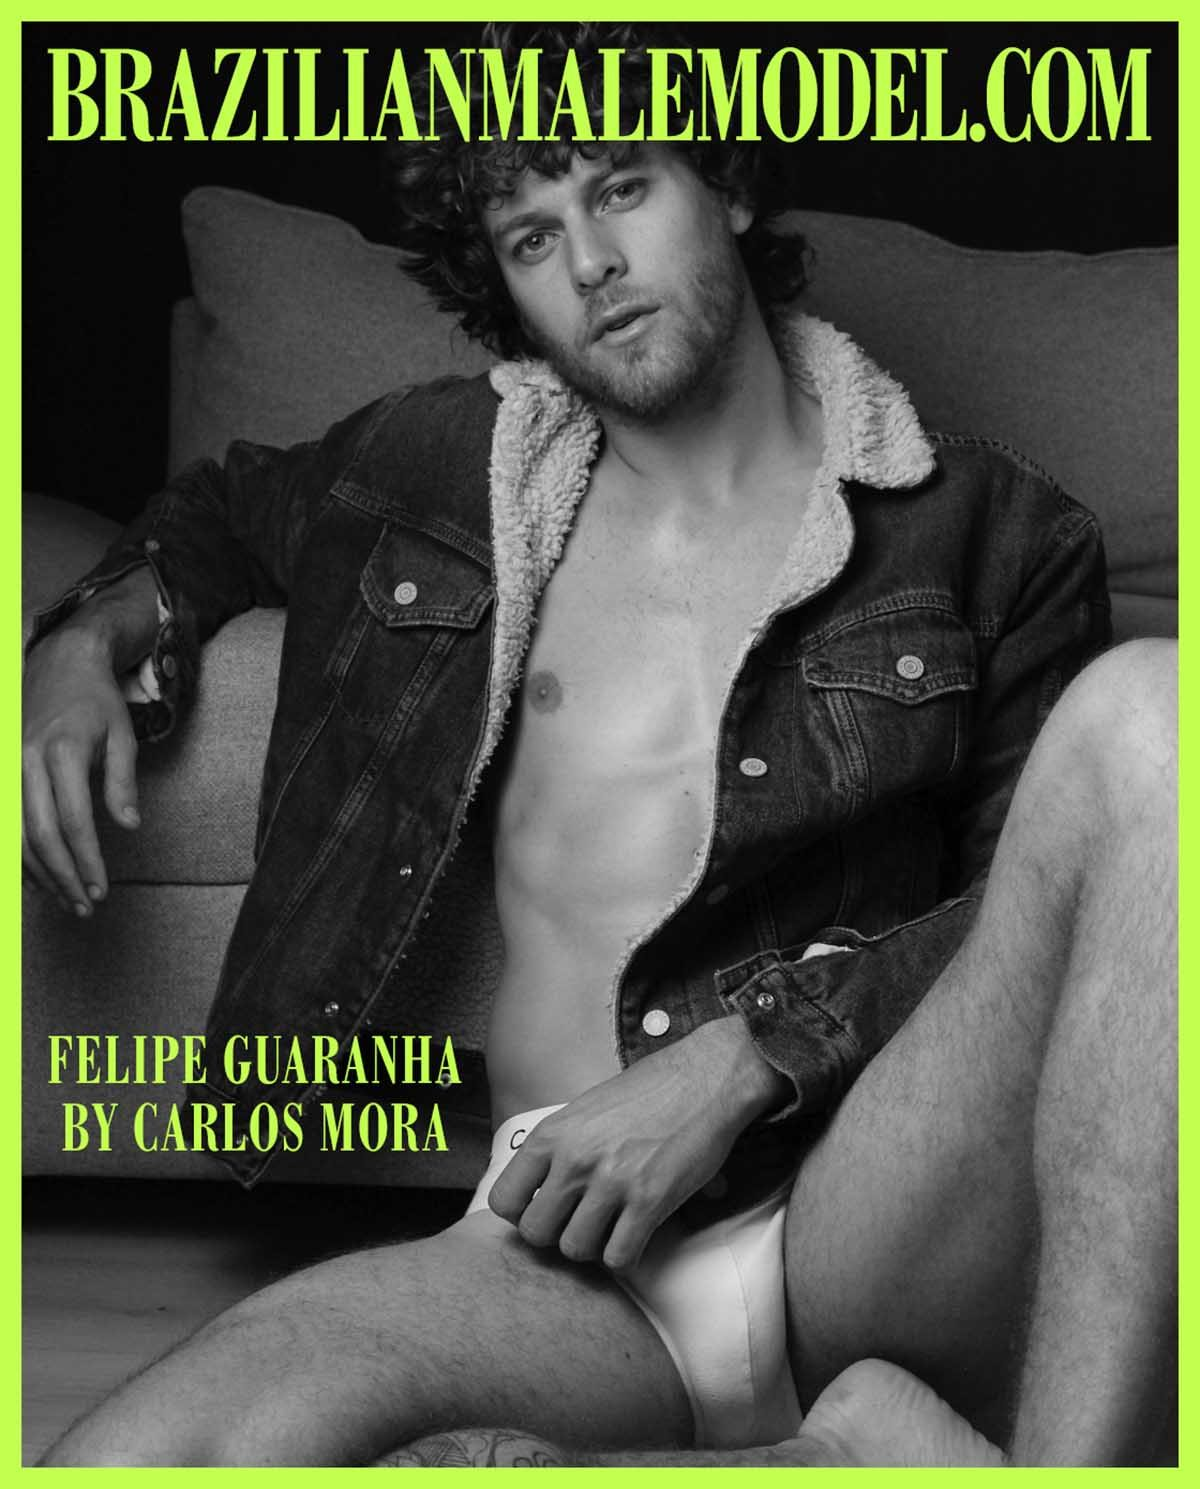 Felipe Guaranha by Carlos Mora